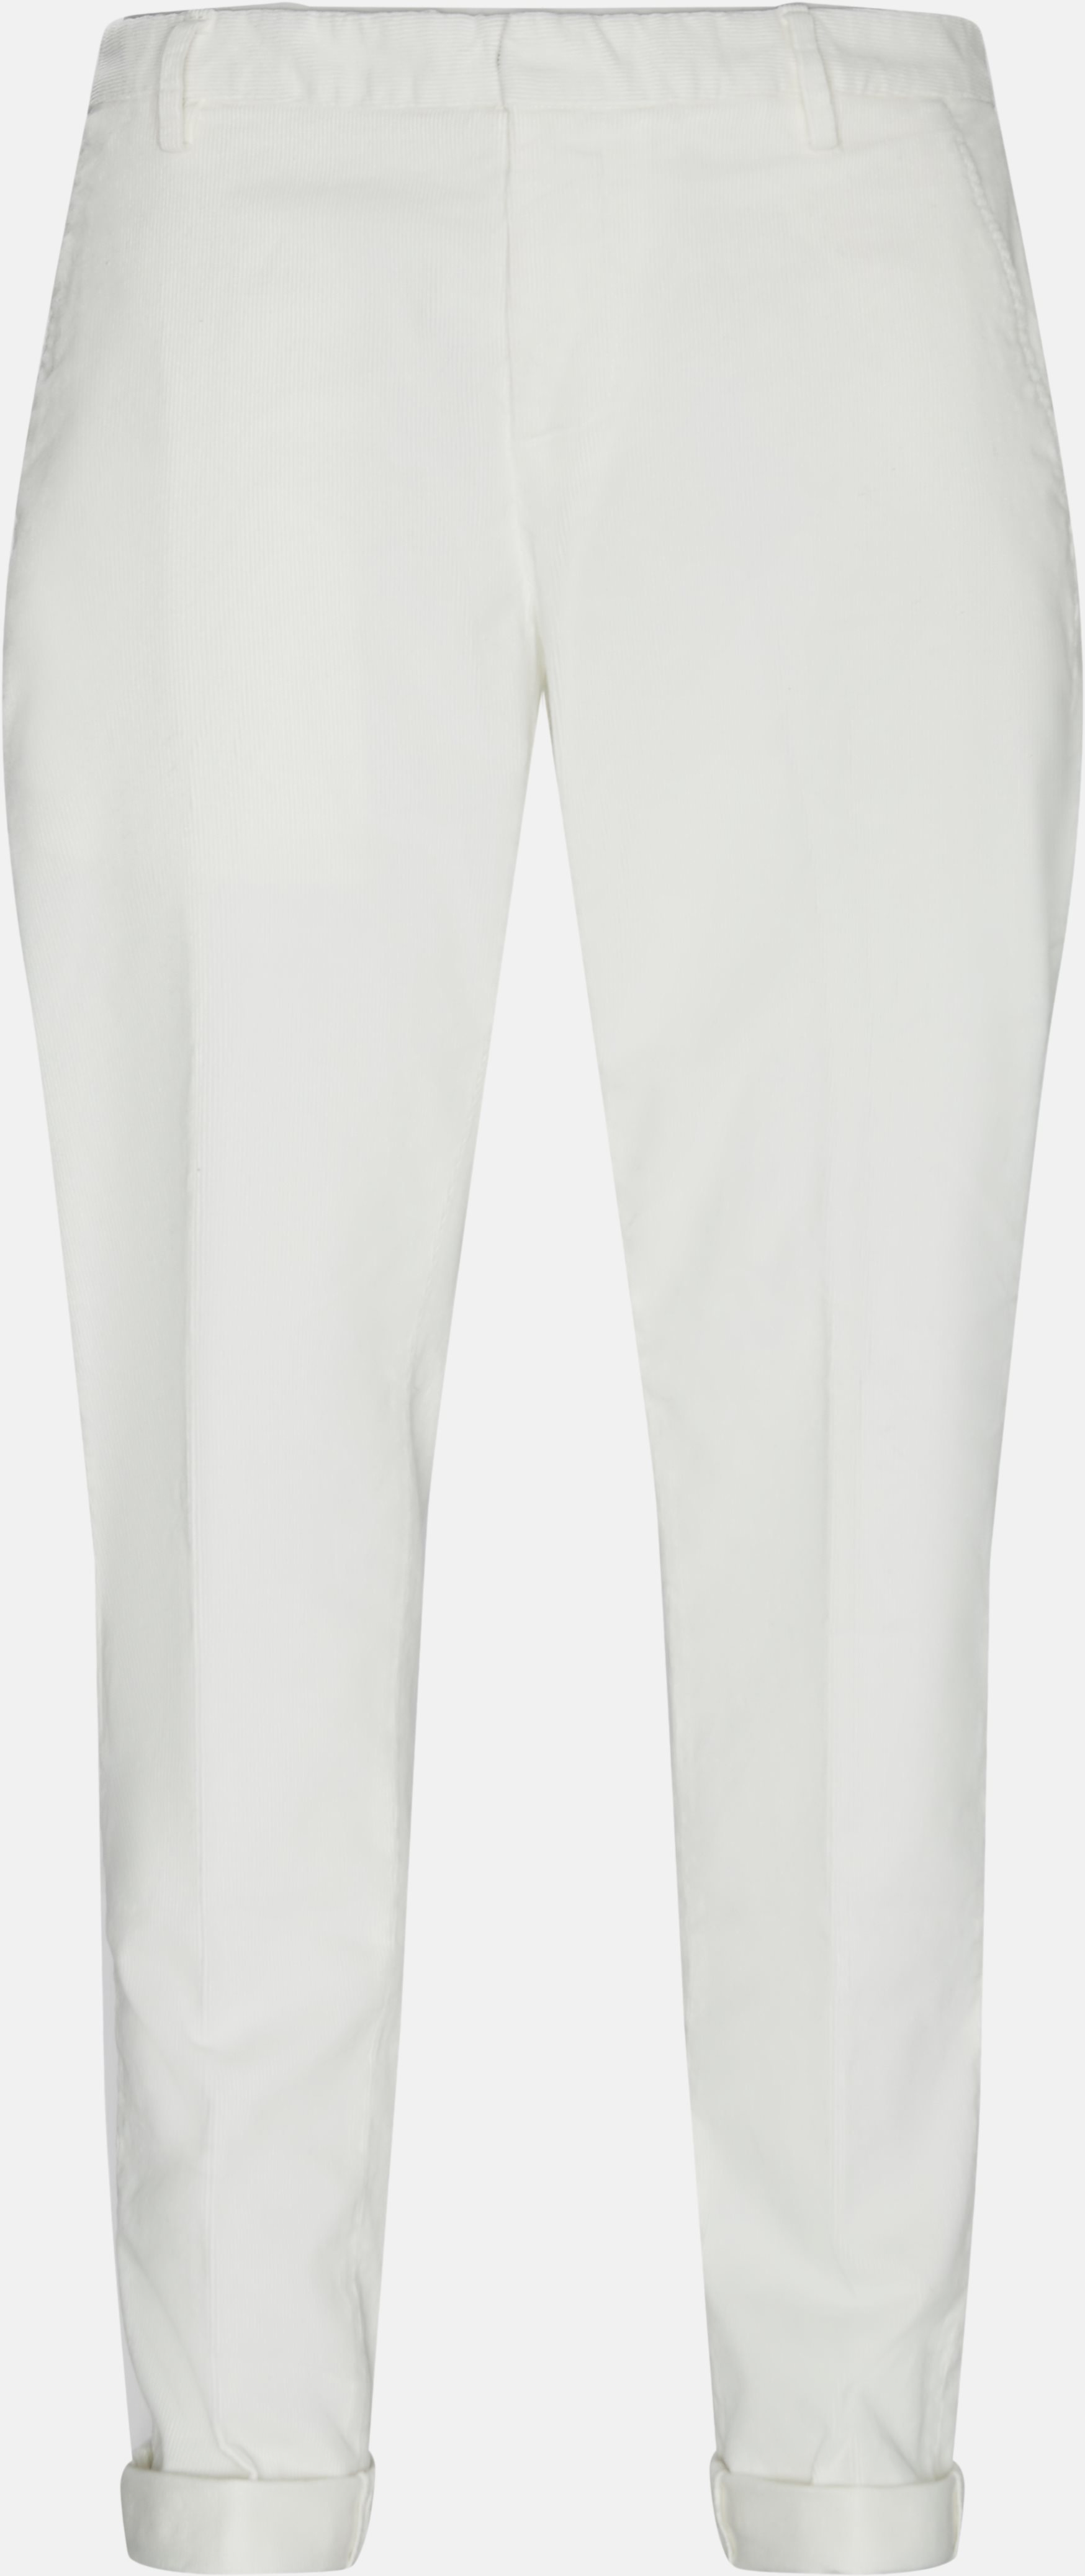 Trousers - Regular fit - White